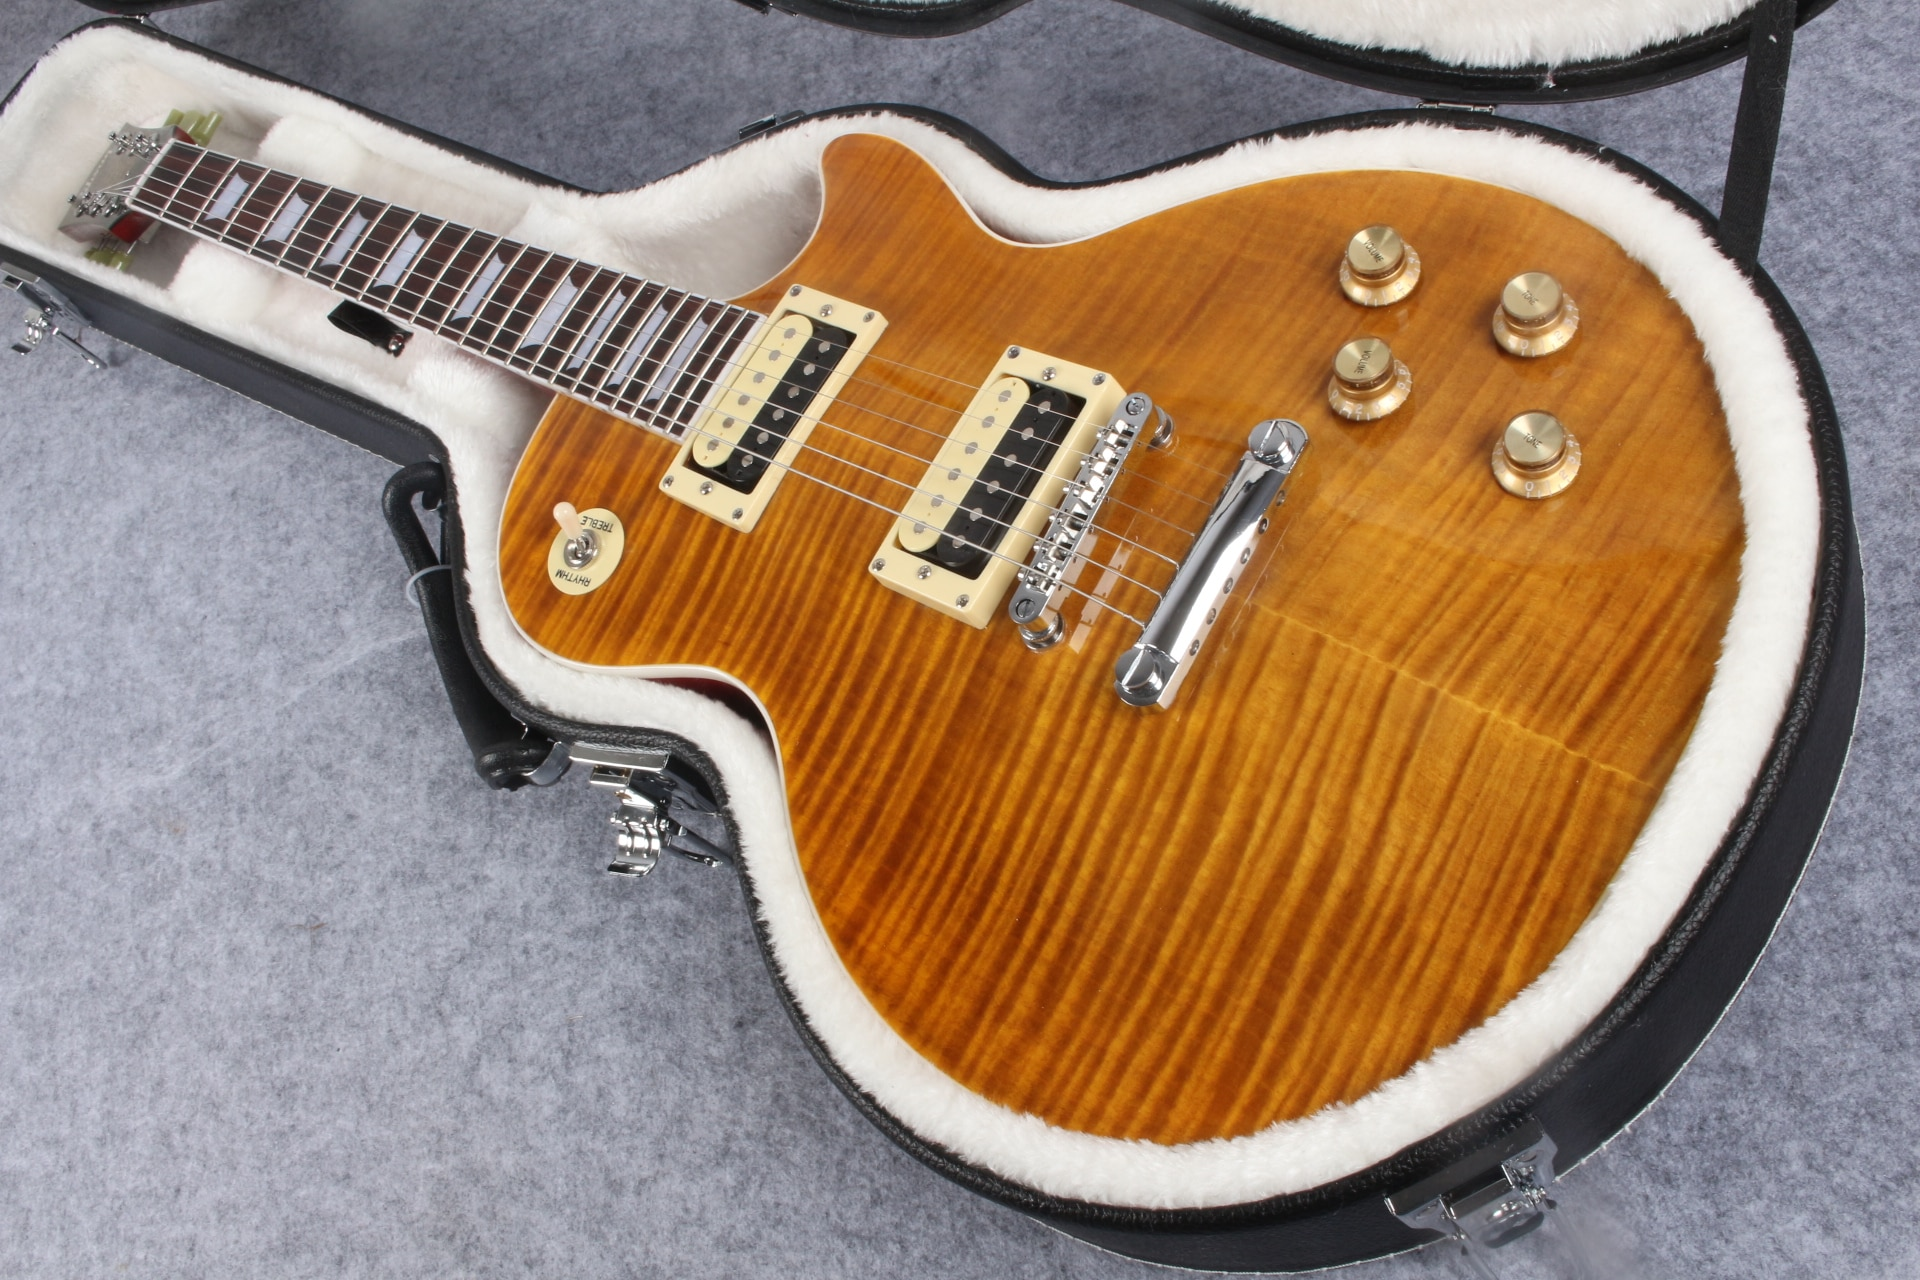 standard guitar high quality electric guitar, Flame maple top, free shipping